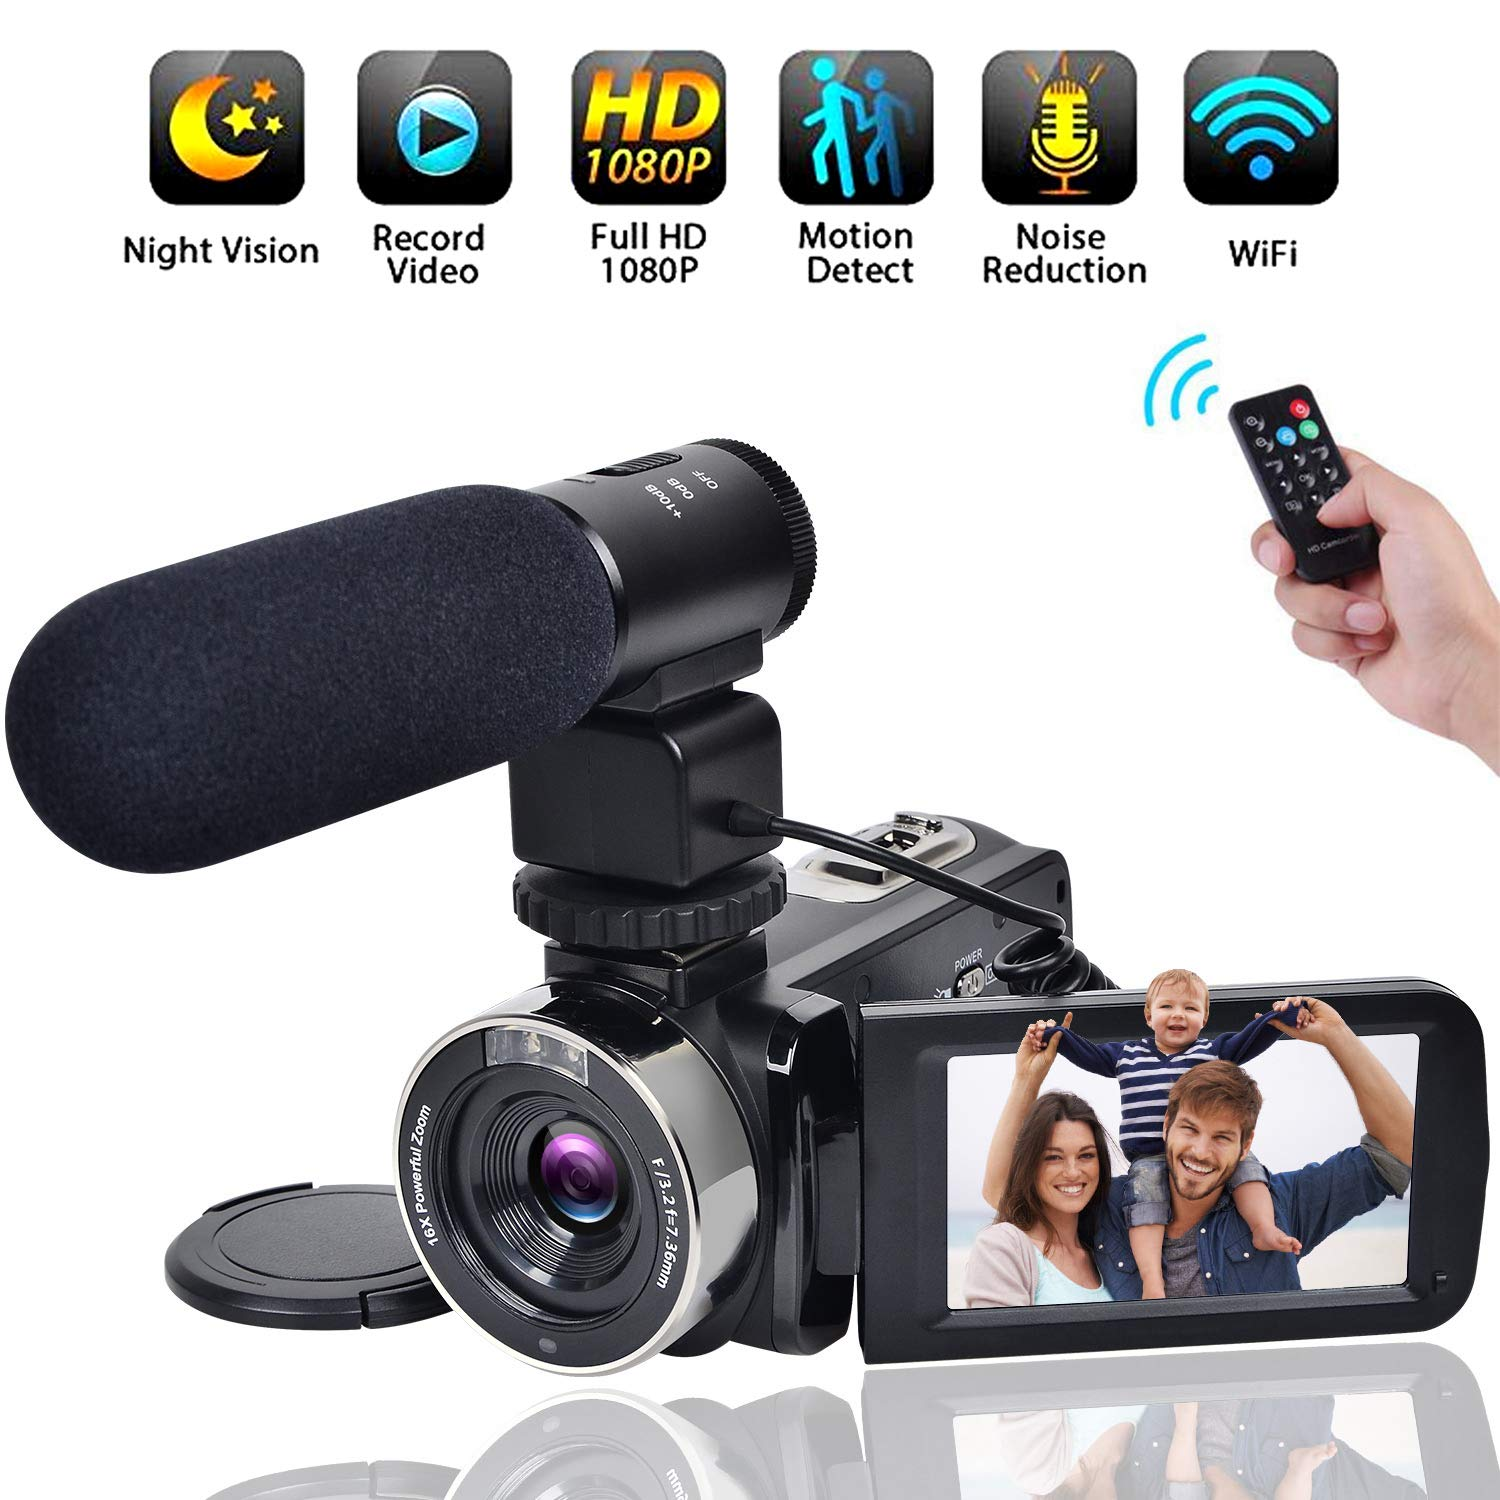 Video Camera WiFi Camcorder Comkes Full HD 1080P 30FPS Vlogging Camera 24MP 16X Digital Zoom 3.0 Inch LCD Touch Screen IR Night Vision with External Microphone and Remote Control by Comkes